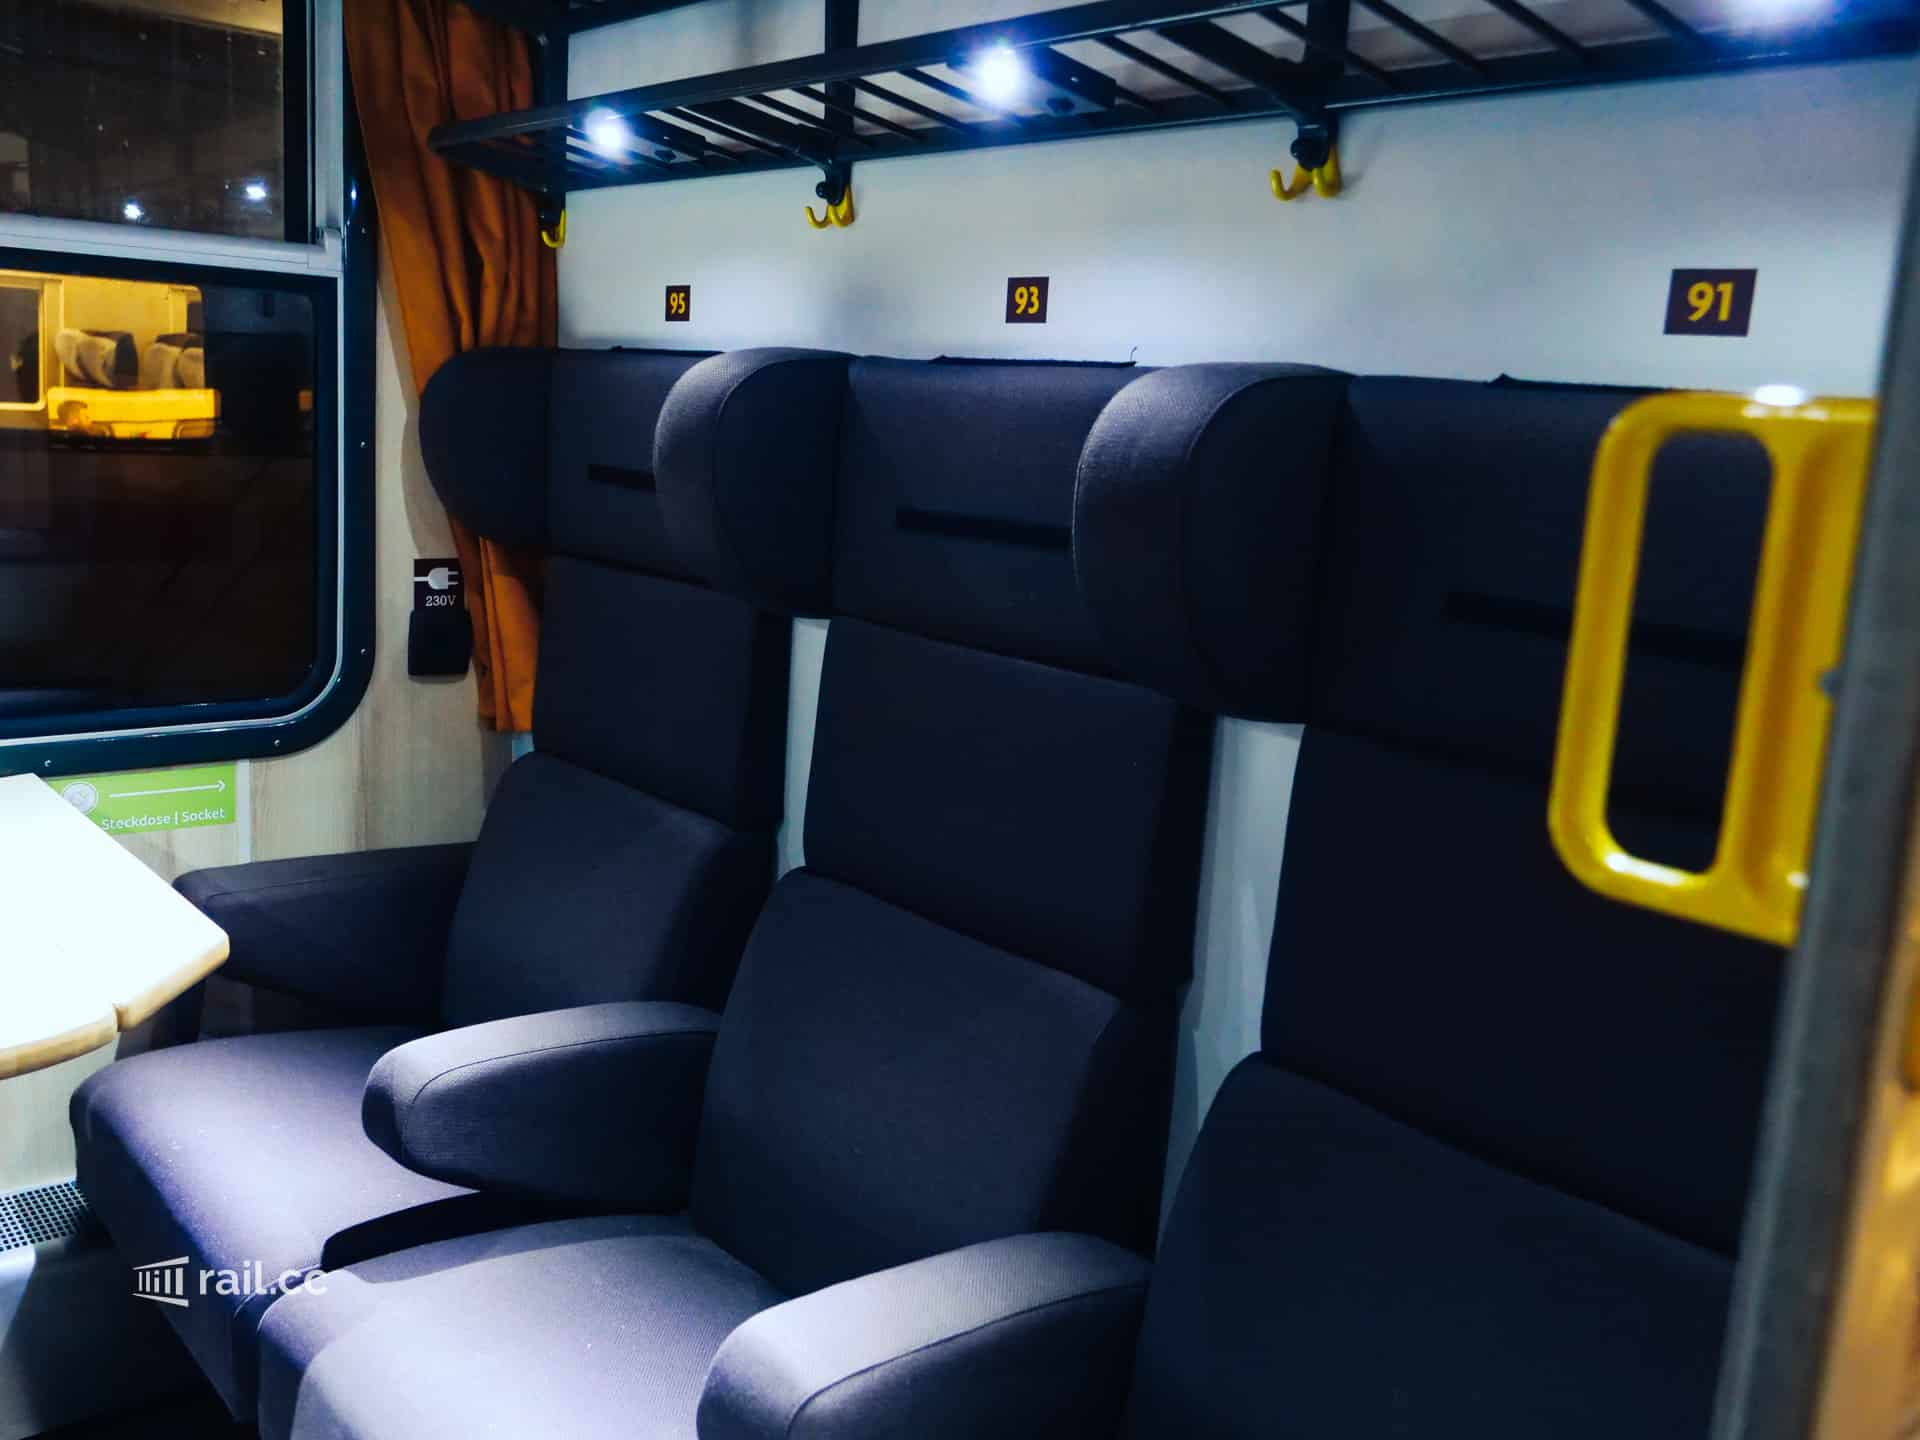 Flixtrain seating compartment